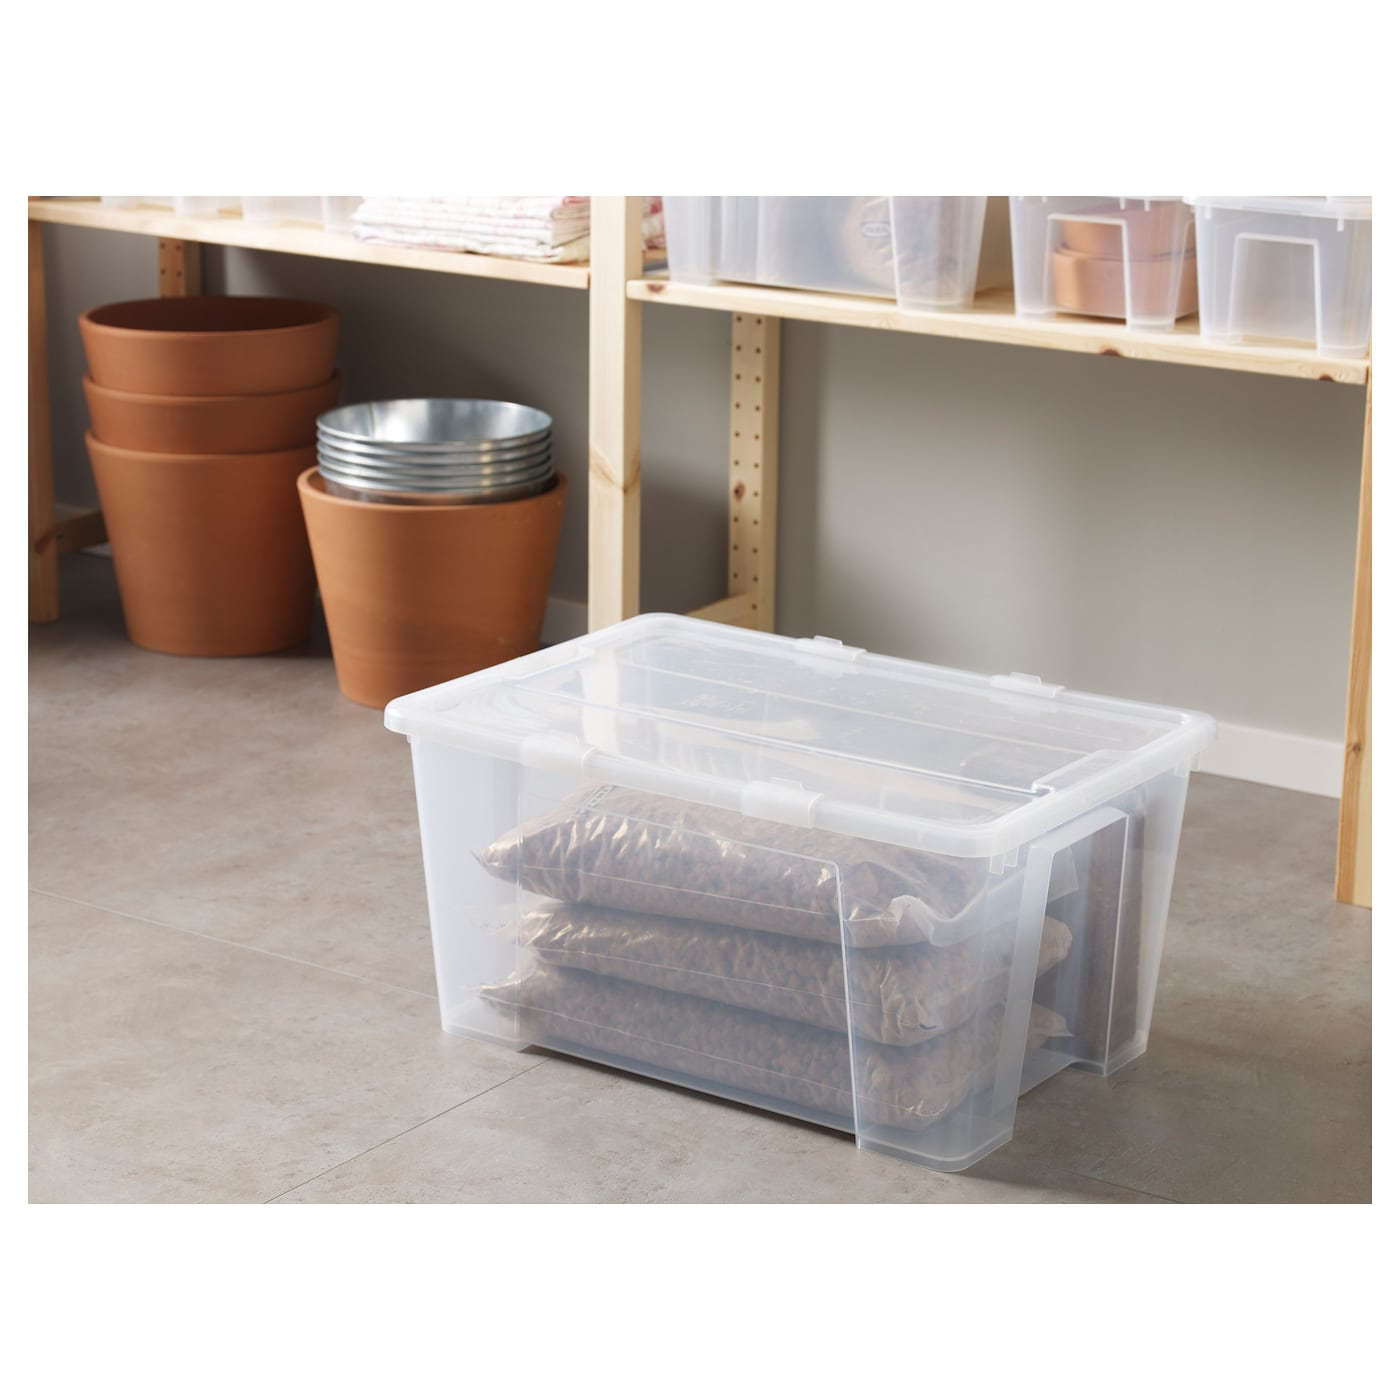 Uncategorized Storage Containers Ikea samla box with lid transparent 57x39x28 cm45 l ikea the protects contents and makes stackable